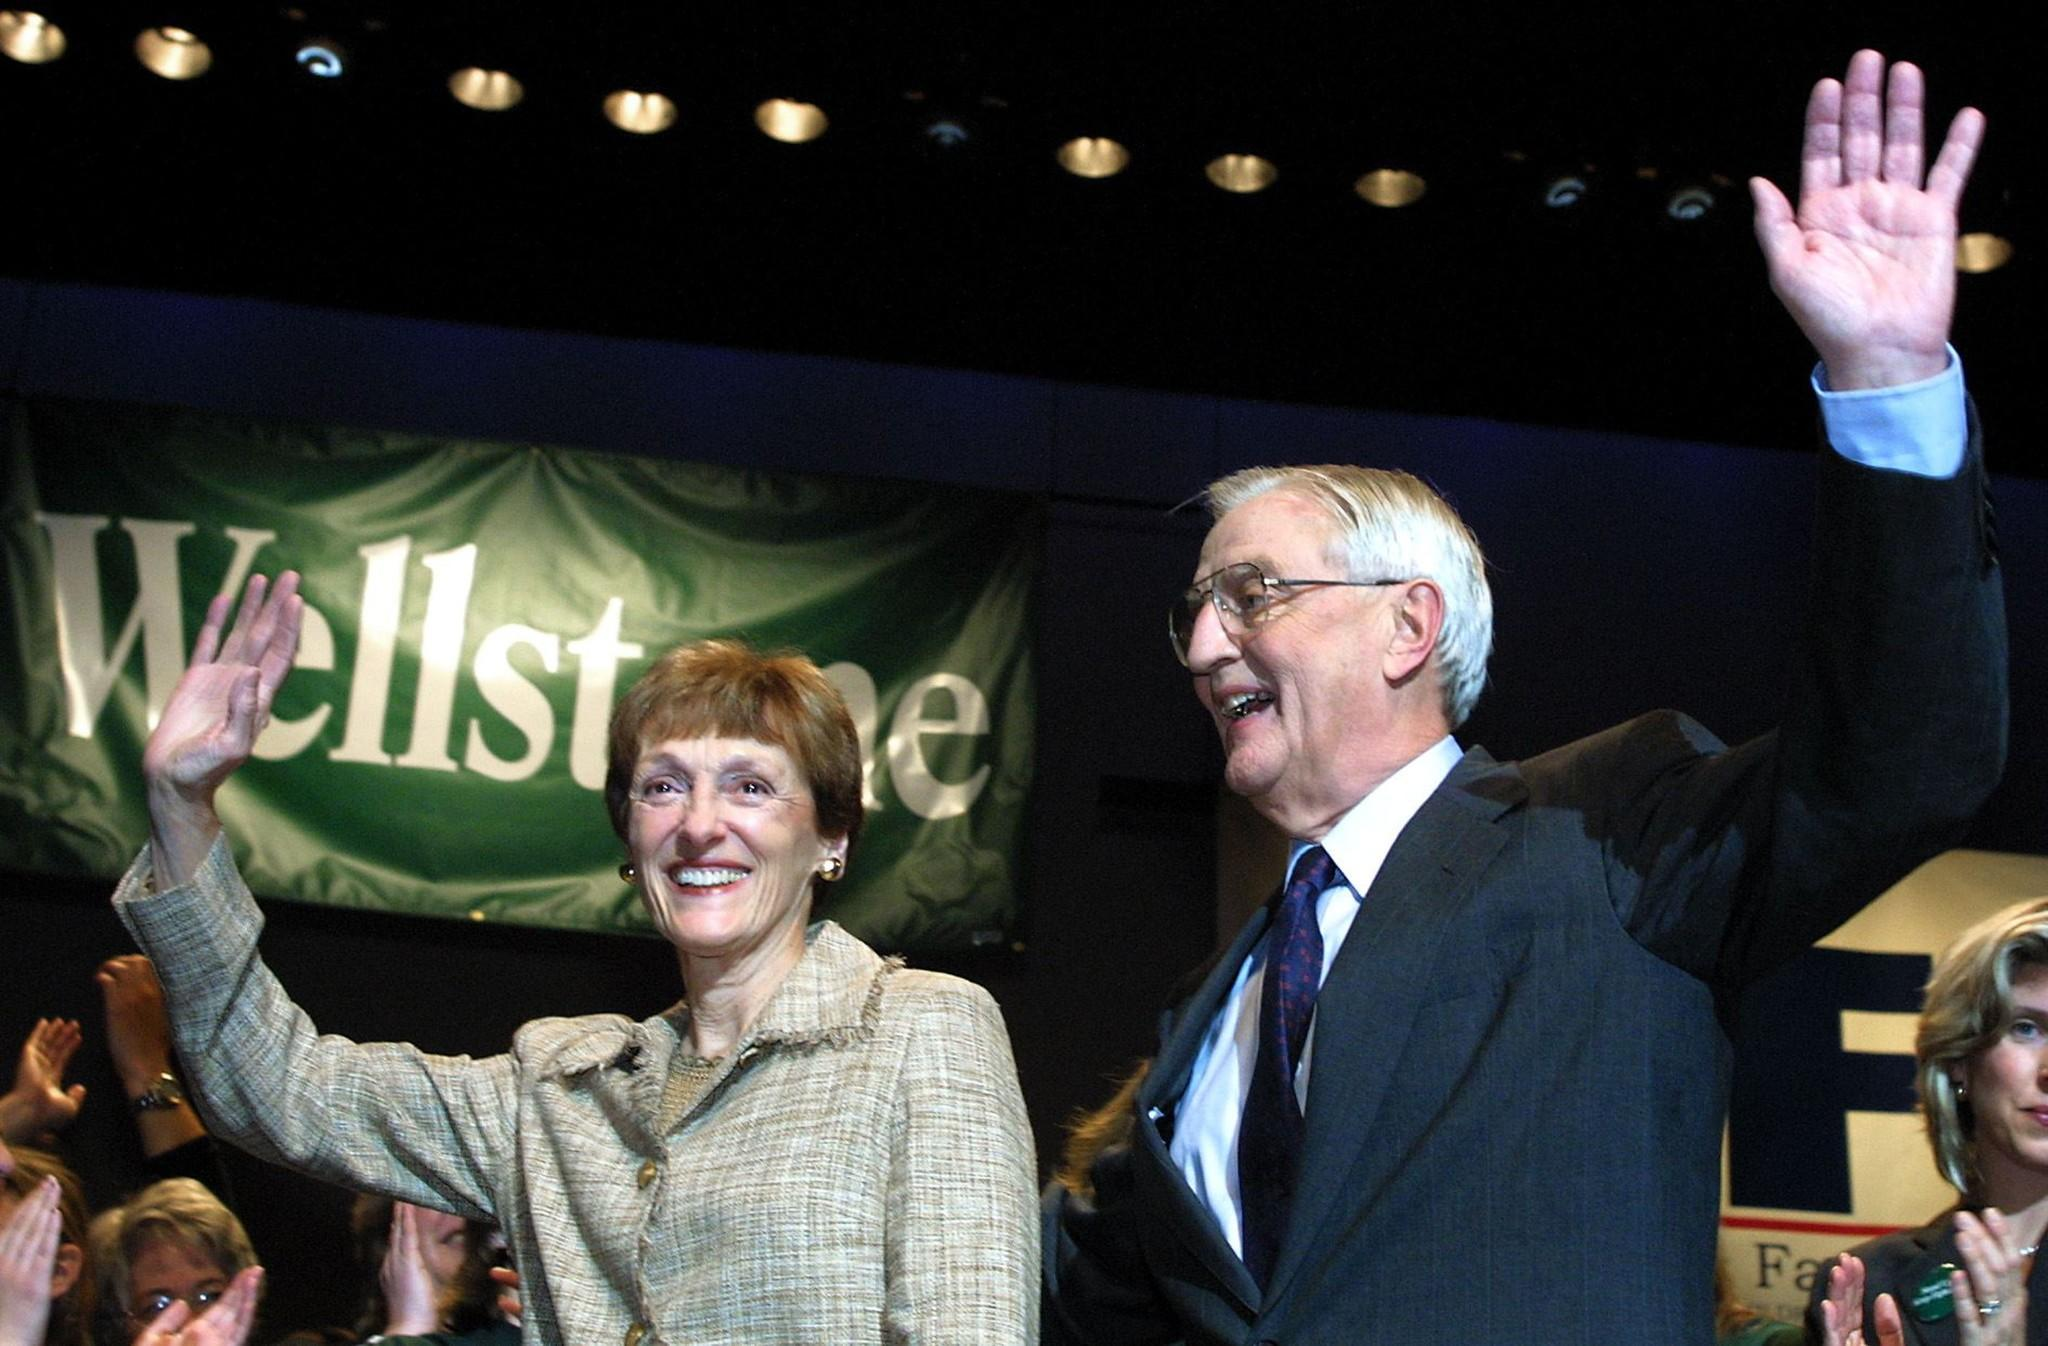 Walter Mondale (L) and his wife Joan Mondale wave to the crowd after the former US vice-president gave his acceptance speech as the candidate for US Senate for the DFL, in this September 30,2002 file photo at the State Theater in Minneapolis, Minnesota.